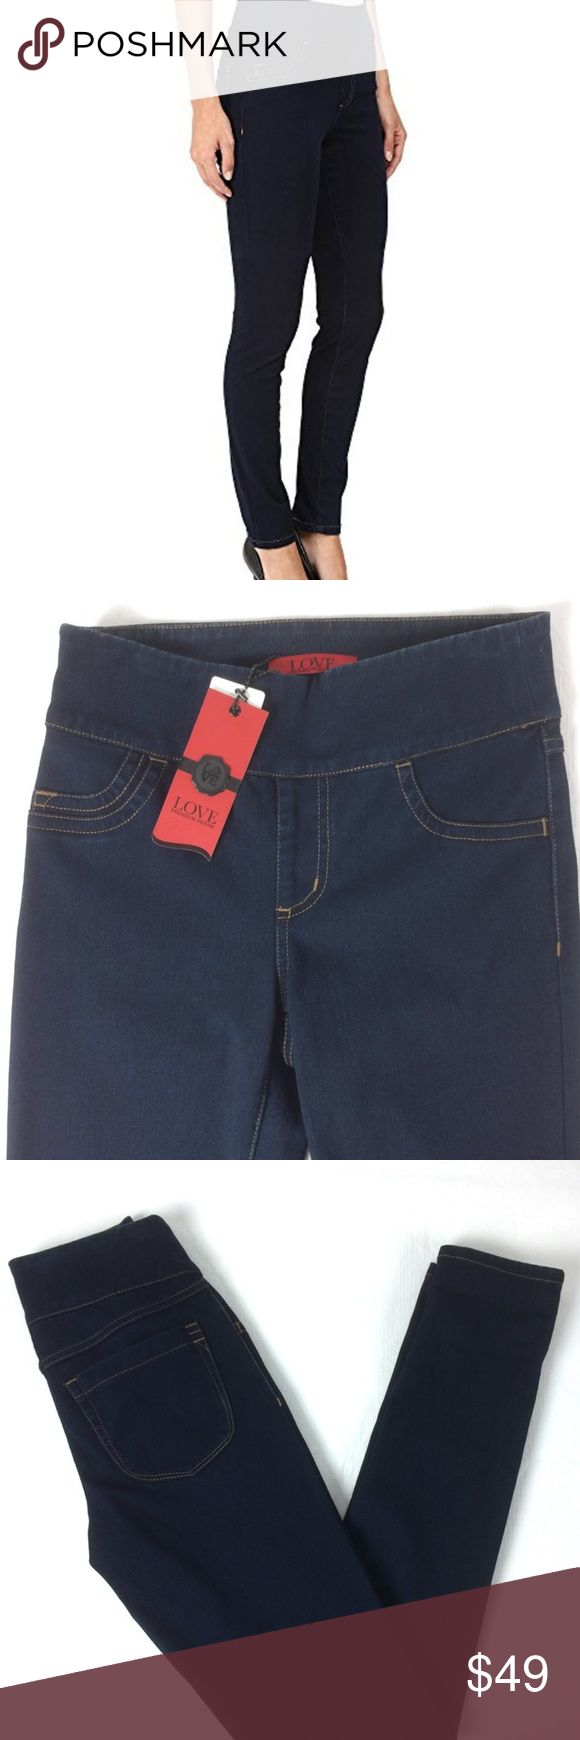 """FDJ  Love Denim Slim Jeggings dark pull on jeans Mid rise Jegging with slim leg fit super soft with 4-way stretch pul on style for a smooth waist faux front pockets 65% cotton, 35% lycra instantly slimming dark wash new with tags size 2 womens   Actual Measurements laying flat: Waist: 13"""" rise: 9.5"""" inseam: 32"""" leg opening: 5"""" French Dressing Jeans Jeans Skinny"""